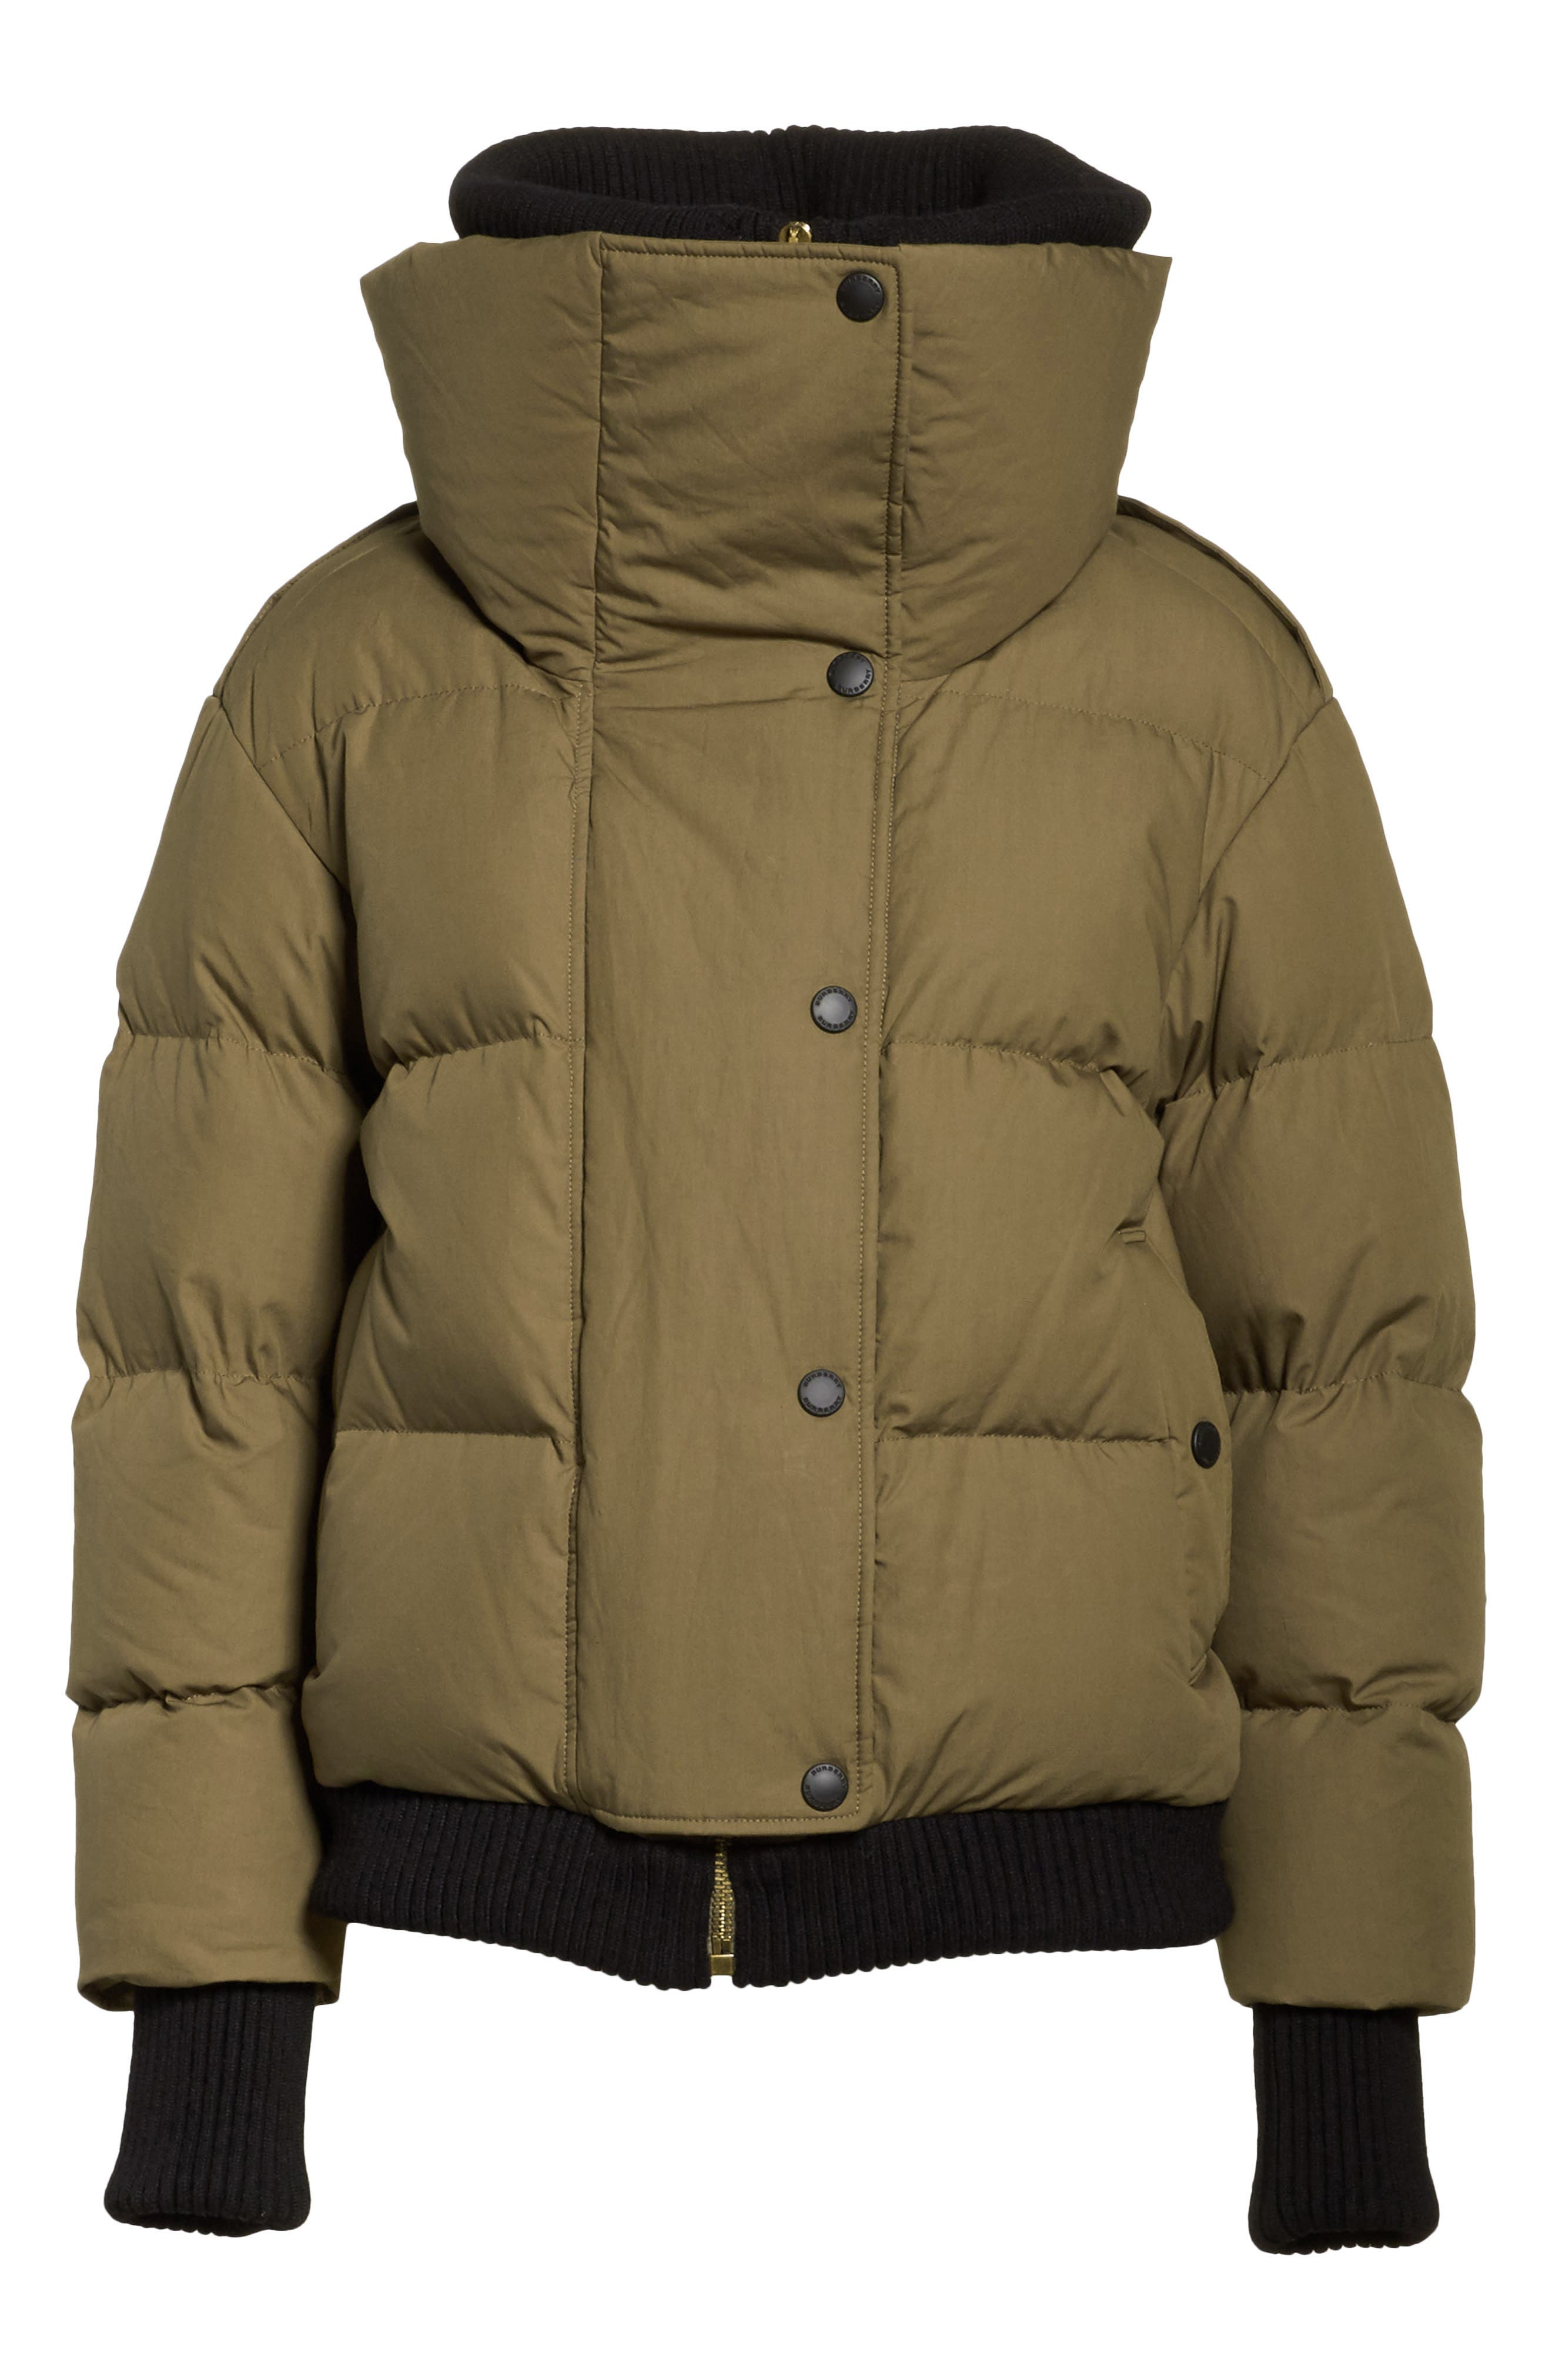 Greenlawkn Puffer Jacket,                             Alternate thumbnail 5, color,                             364